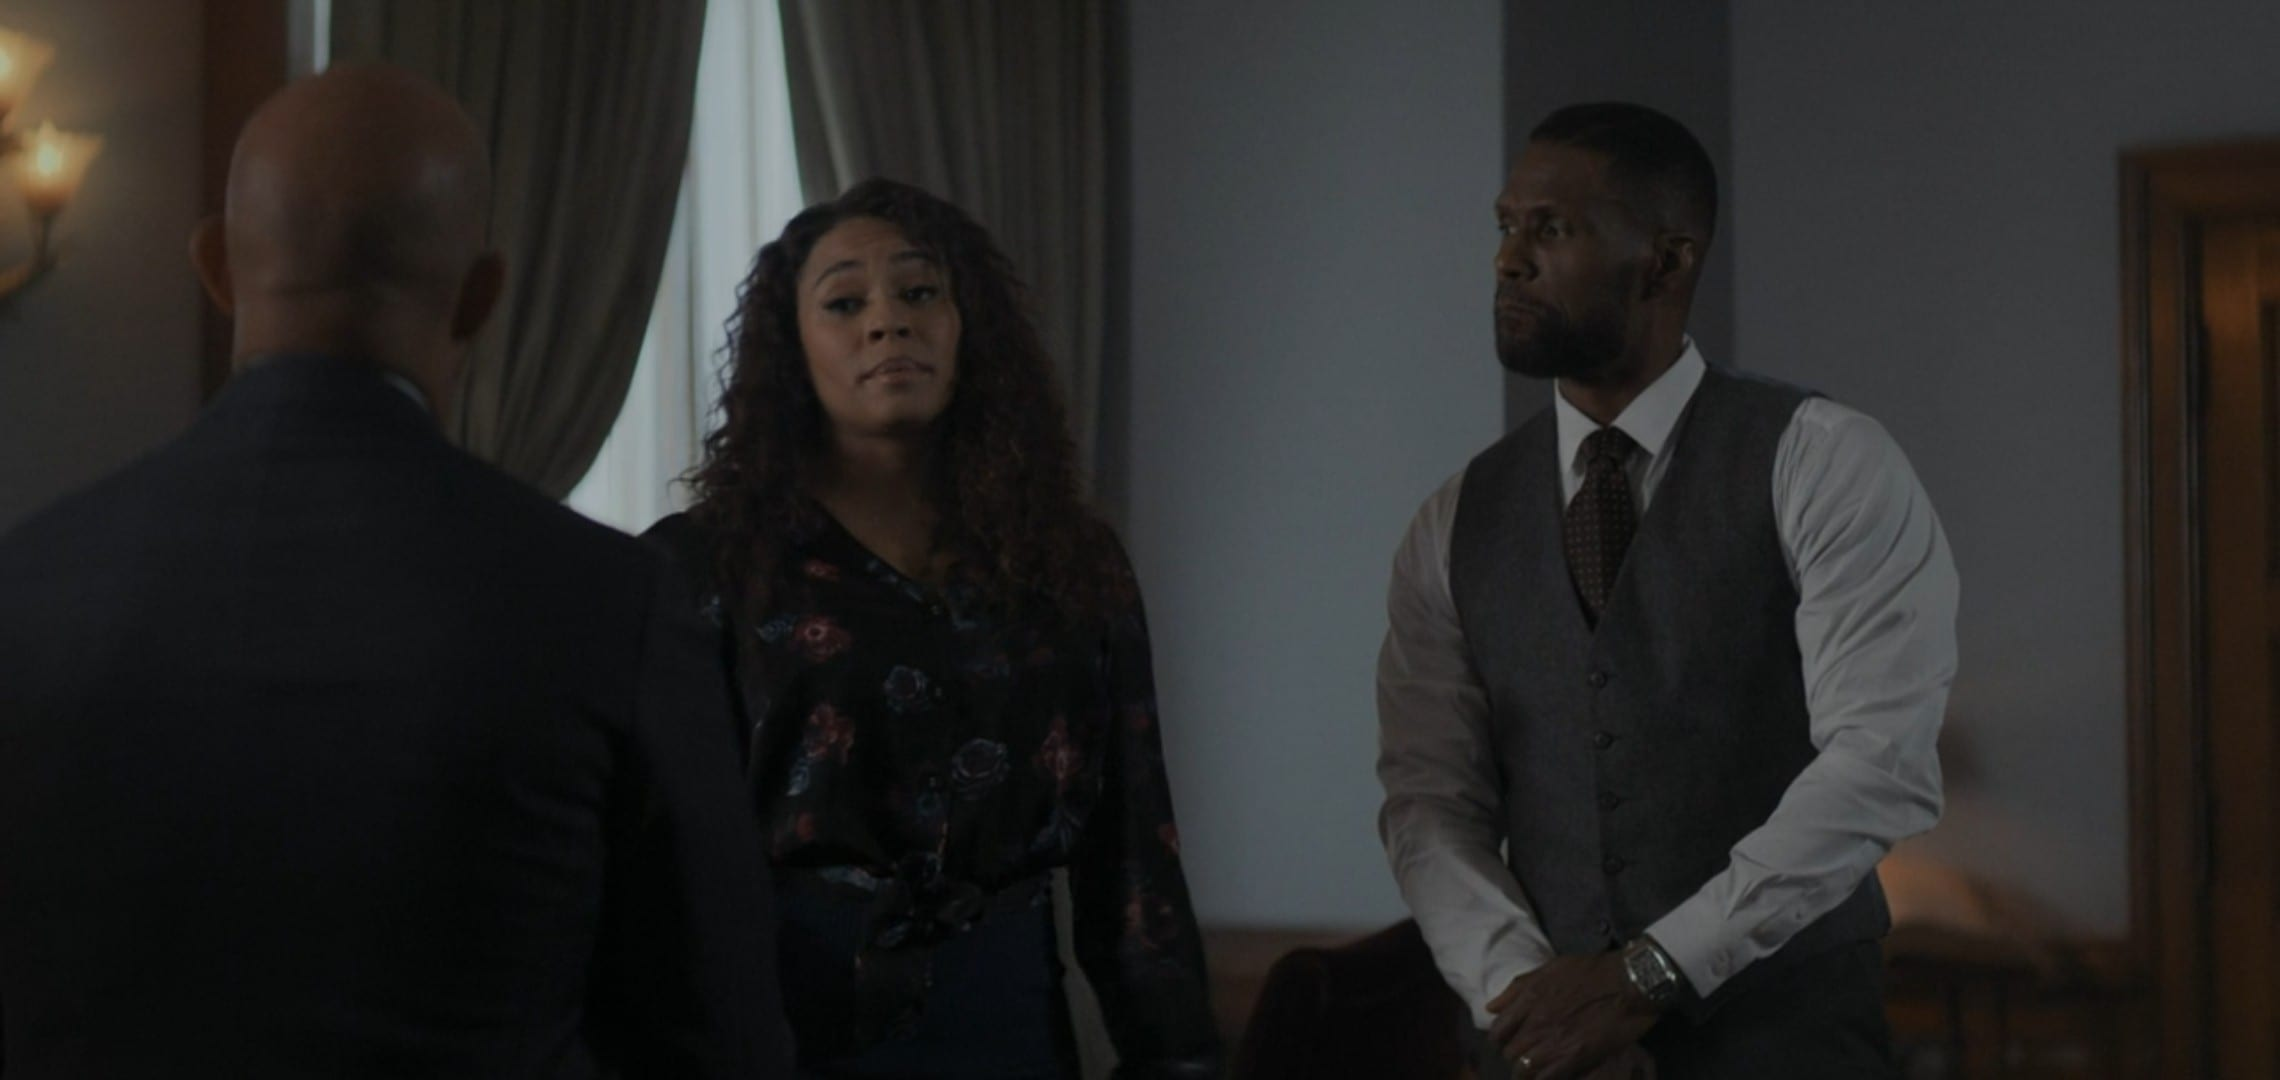 What Went Down In The Chi S04E03?